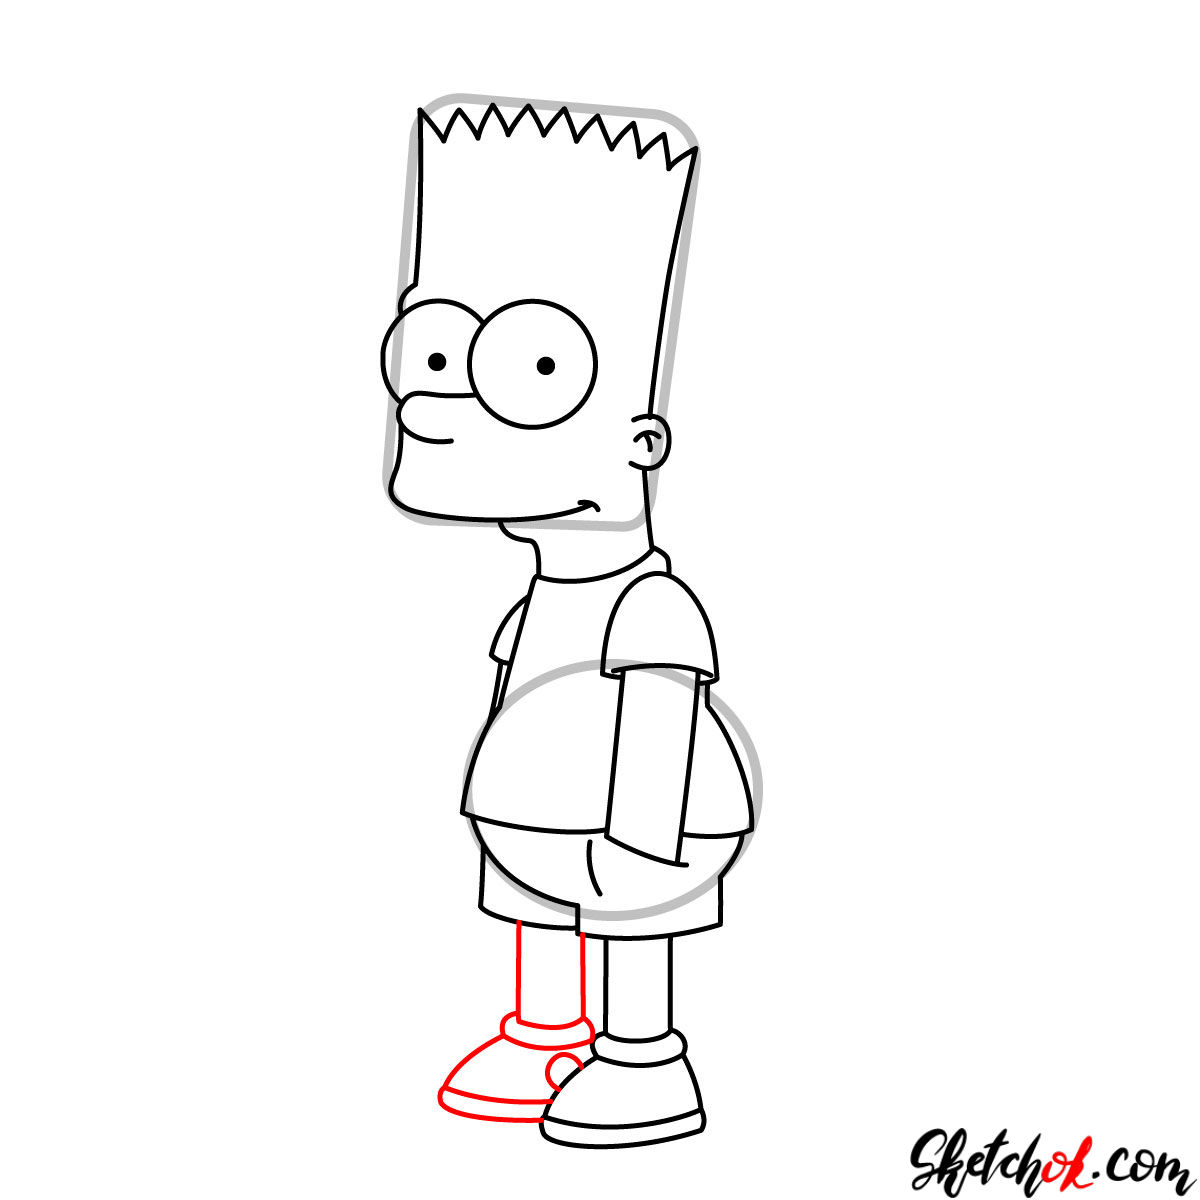 How to draw Bart Simpson - step 09